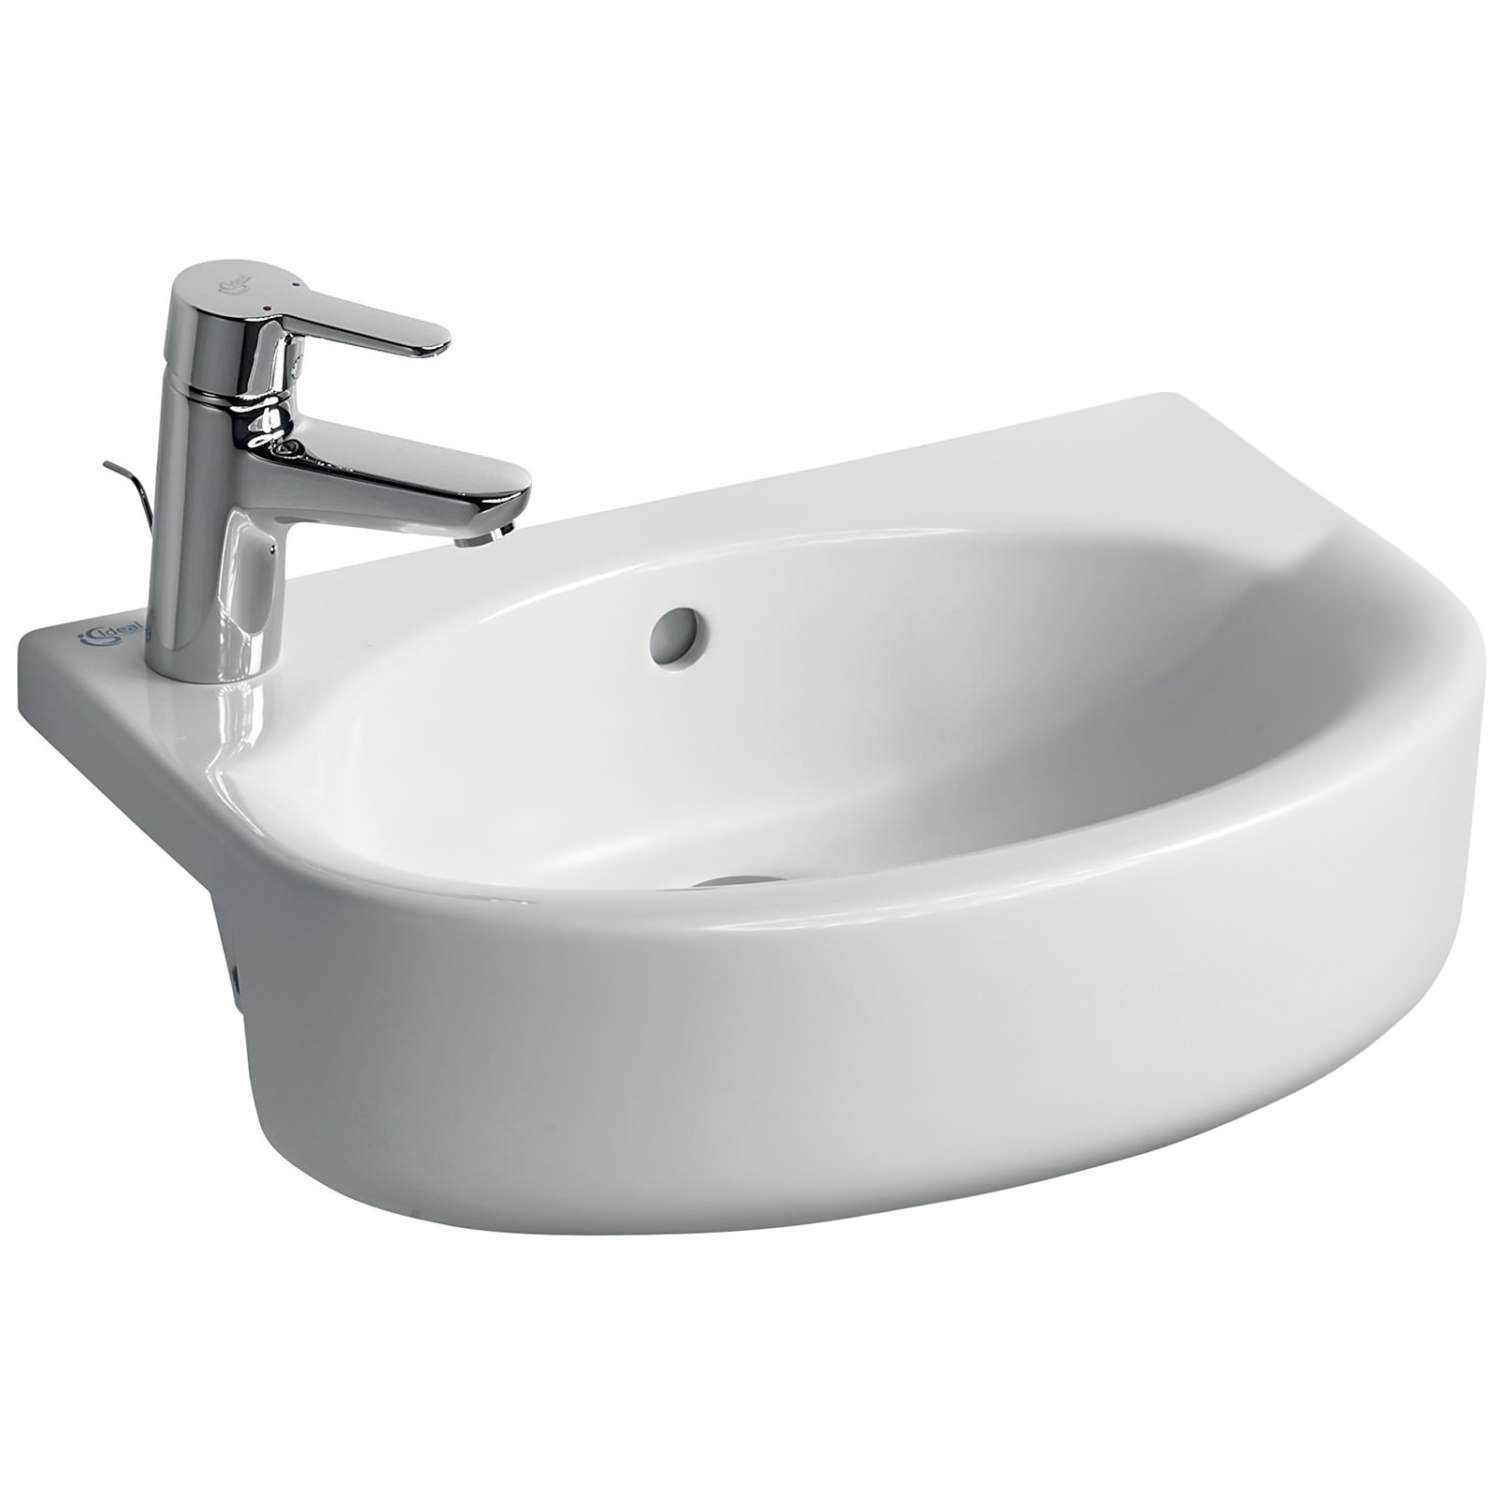 Ideal Standard Concept Space 500mm Arc Semi Countertop Basin